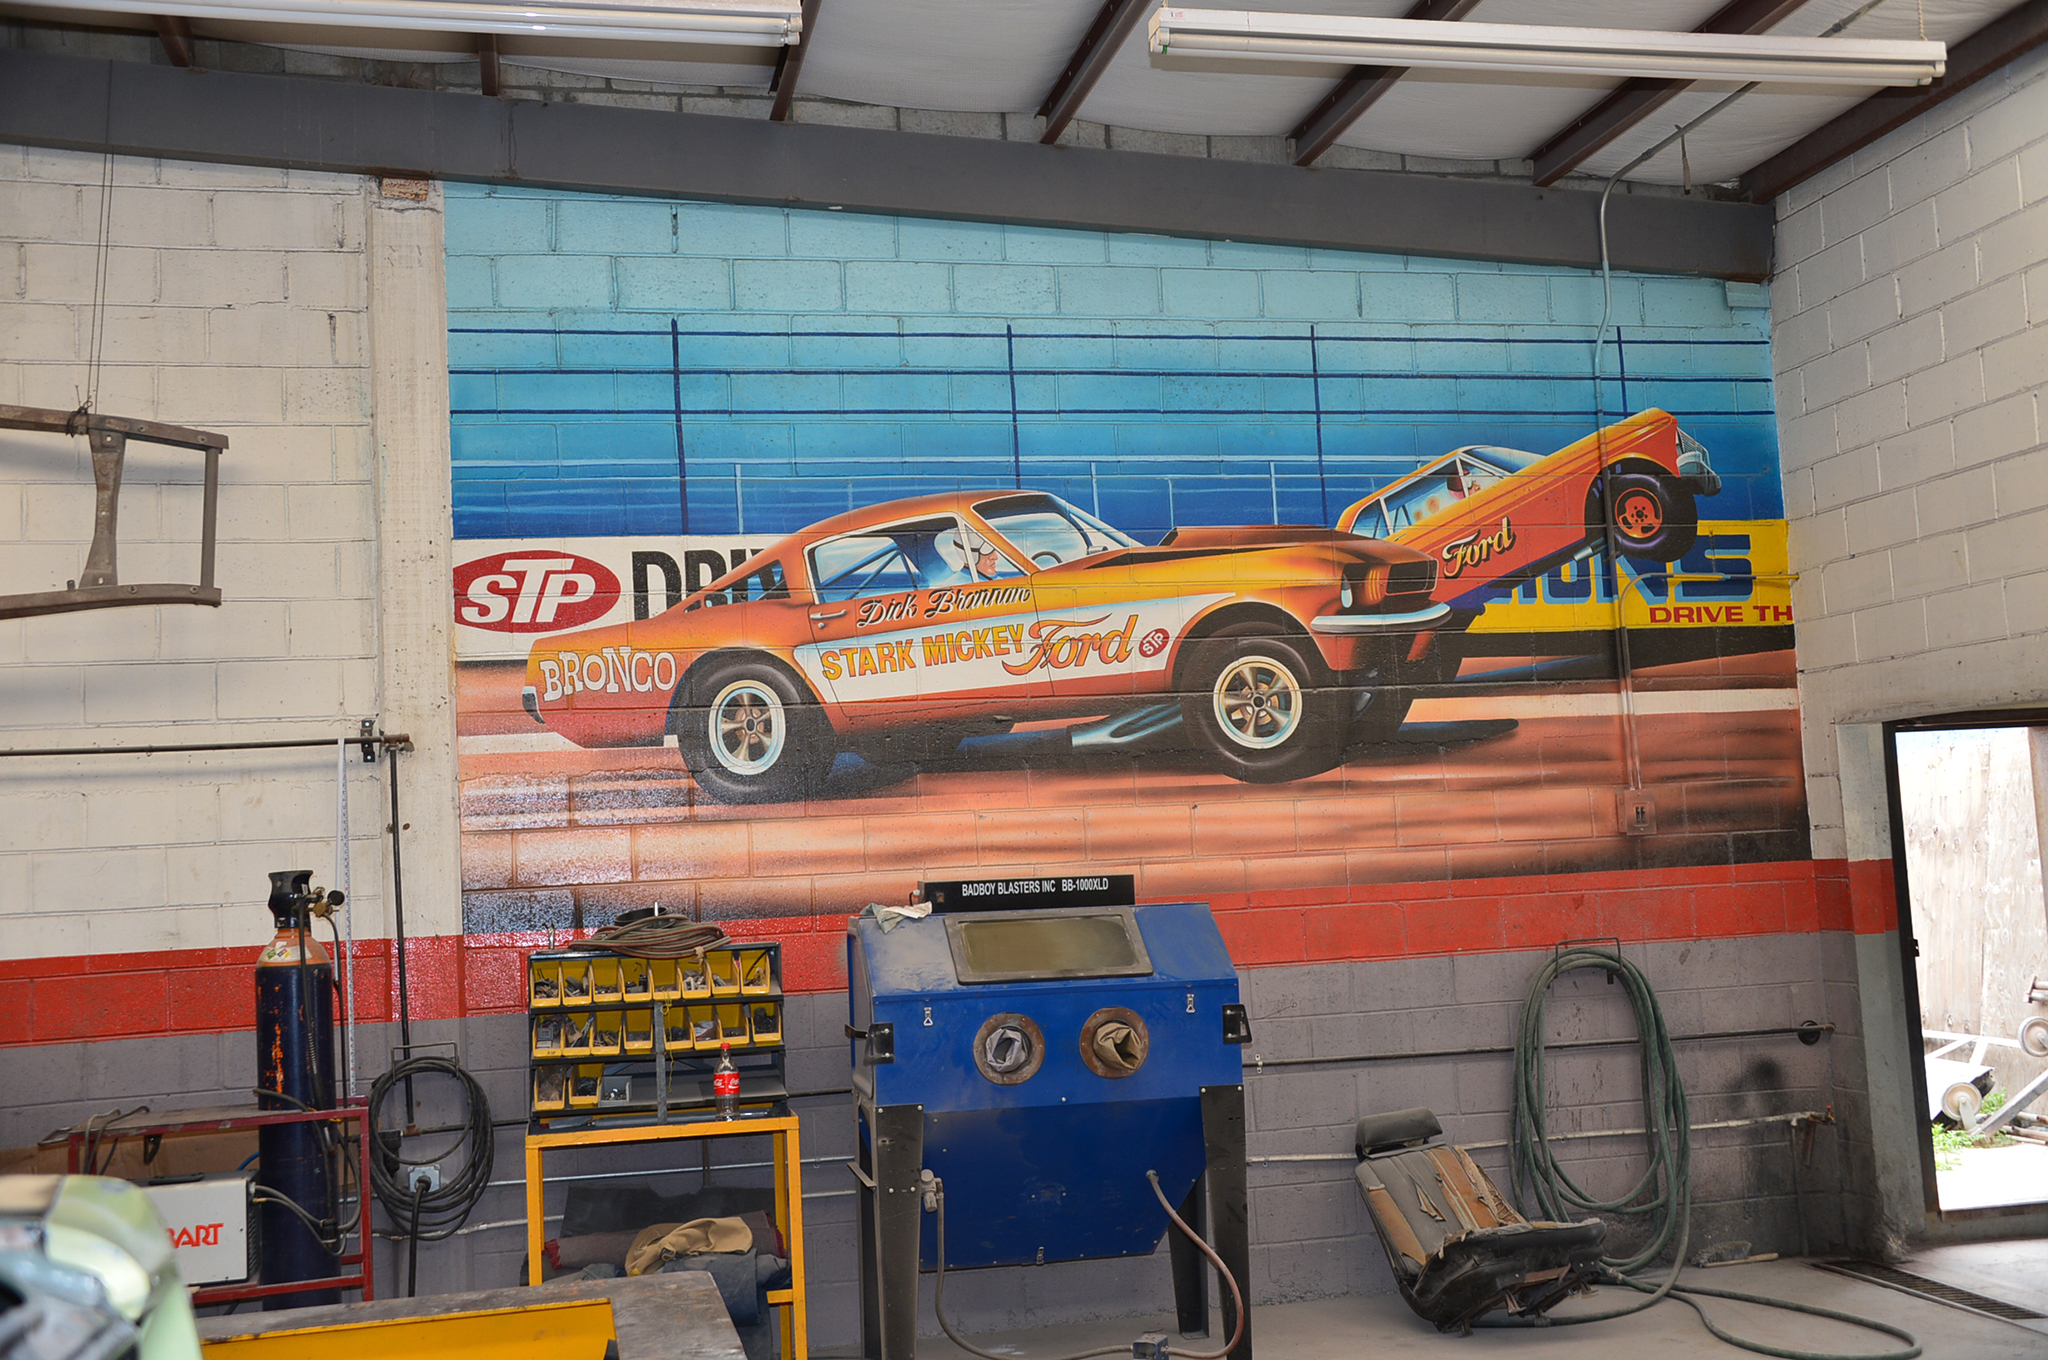 "The shop inside Street Toys shows enthusiasm for early Mustang drag cars, with this wall painting Dick Brannan's 1965 A/FX Mustang. I was amused to read ""Stark Mickey"" on the side of this 1966 Mustang—""Stark Hickey"" is the name of the Ford dealership."